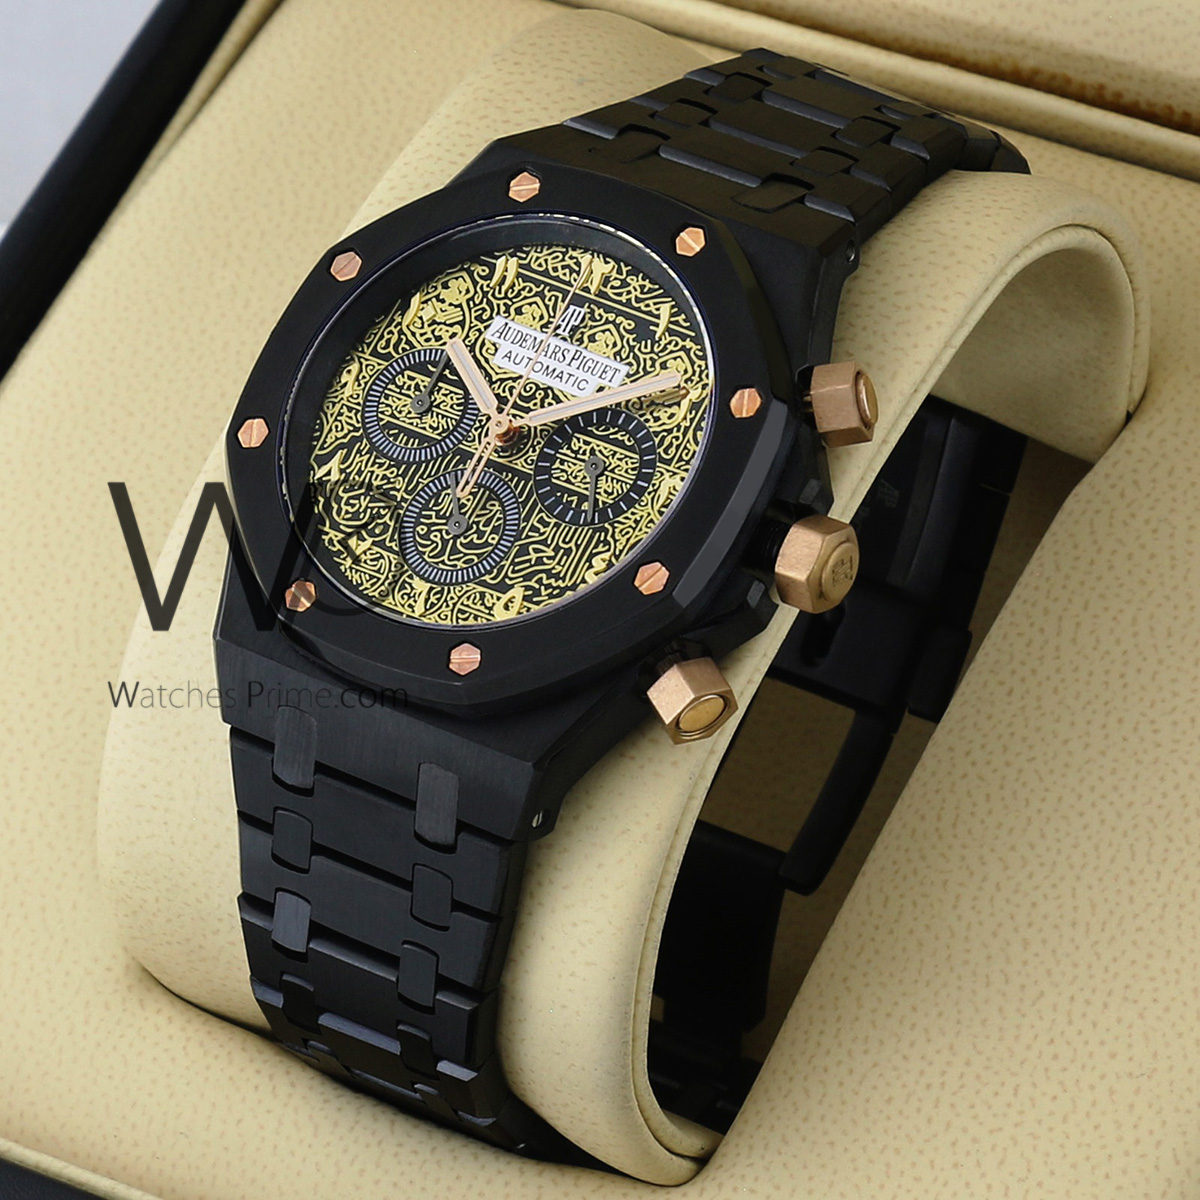 9cc7dfb35 AUDEMARS PIGUET ROYAL OAK OFFSHORE CHRONOGRAPH WATCH BLACK WITH STAINLESS  STEEL BLACK BELT. SKU: 675. Roll ...